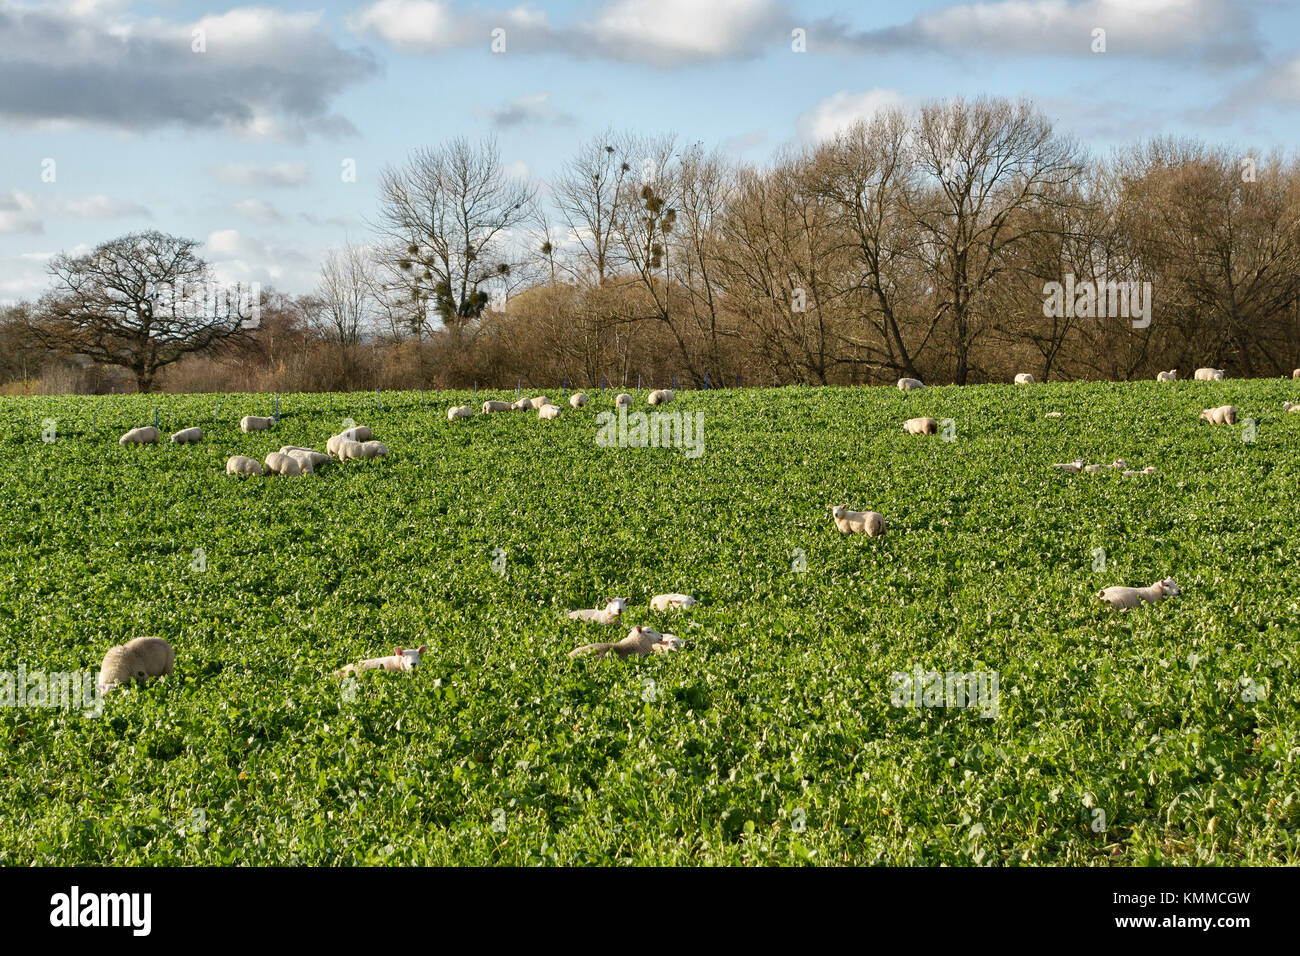 Herefordshire, UK. A field of sheep in winter grazing on sugar beet or fodder beet tops - Stock Image